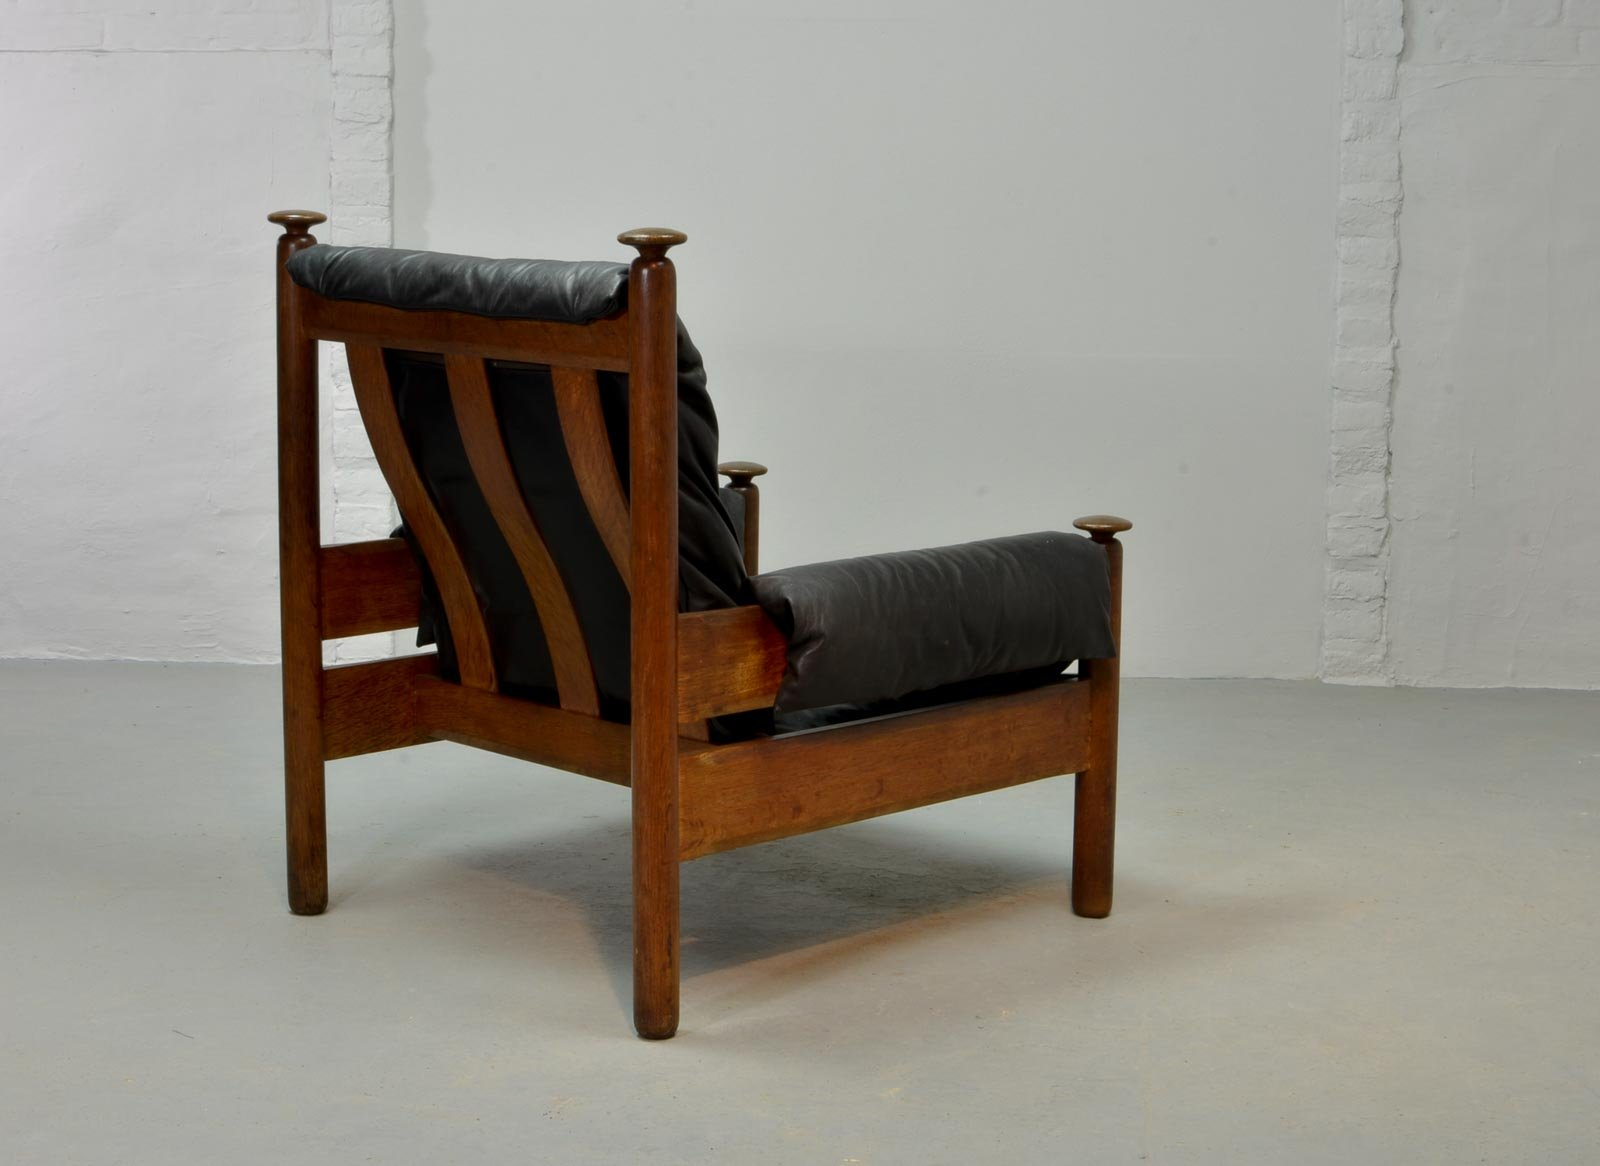 Black Leather Scandinavian Lounge Chair, 1960s for sale at